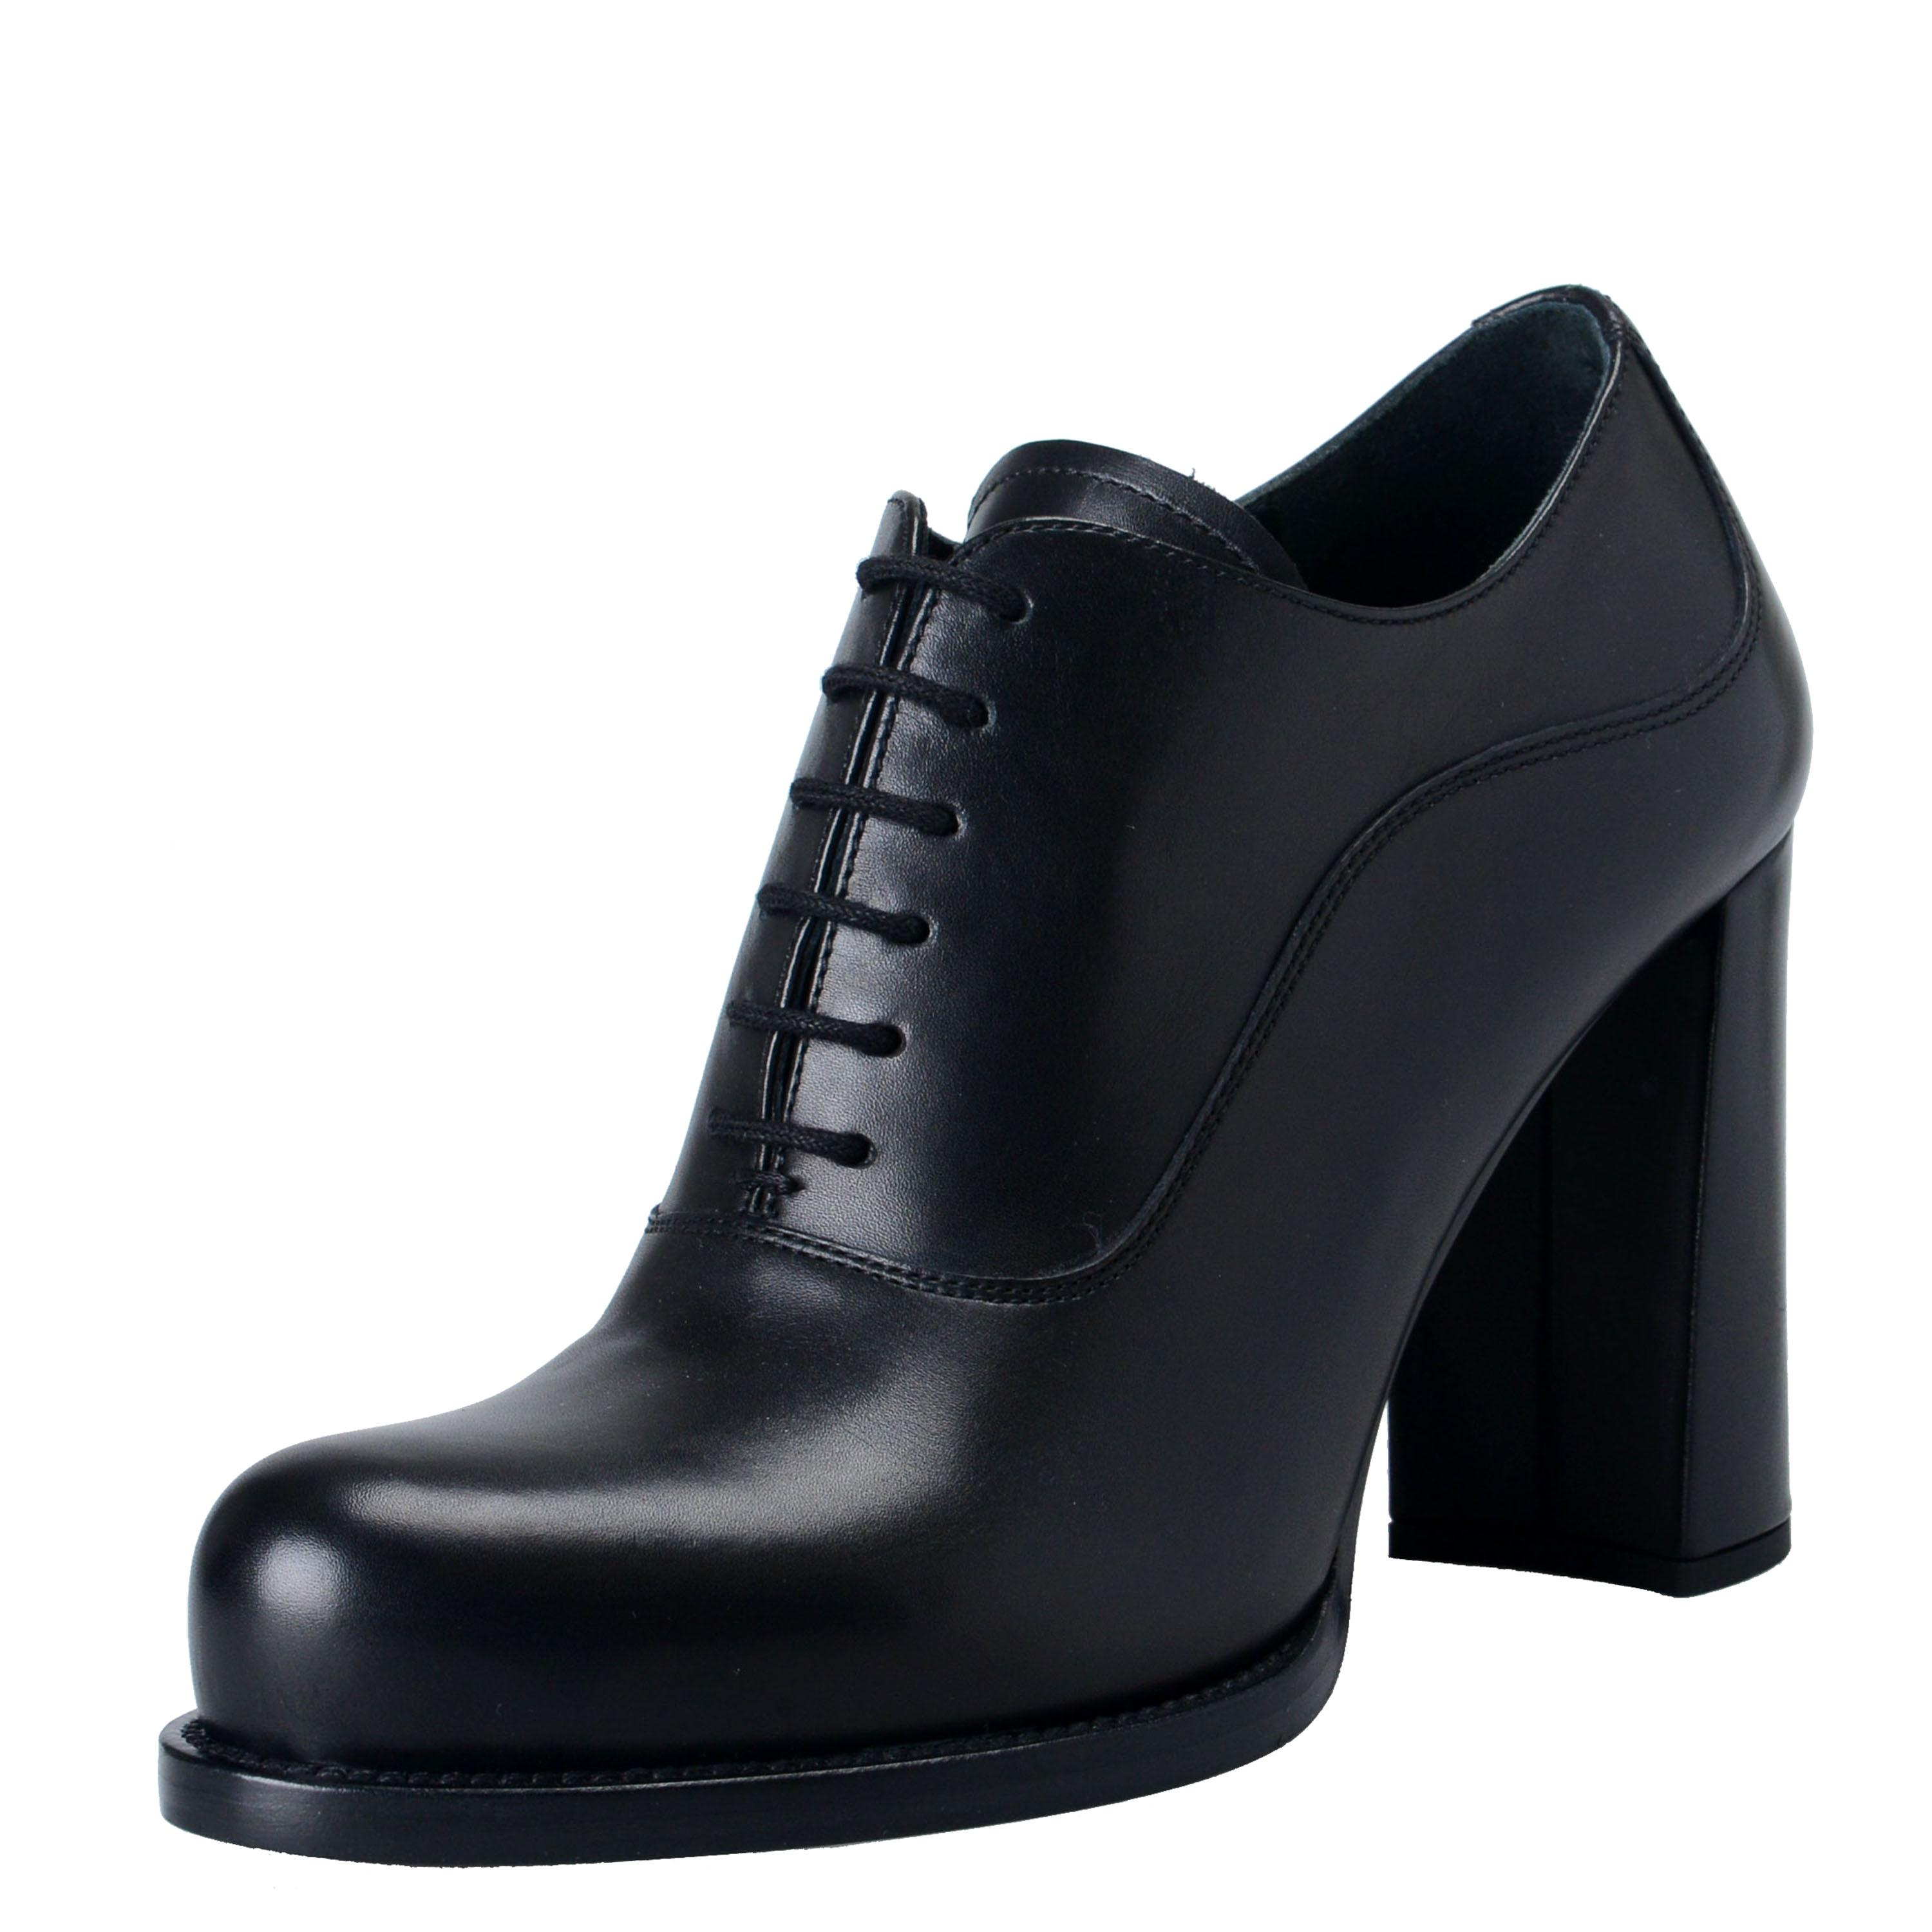 Prada Black 1023 Boots/Booties Size US 7 Regular (M, B)